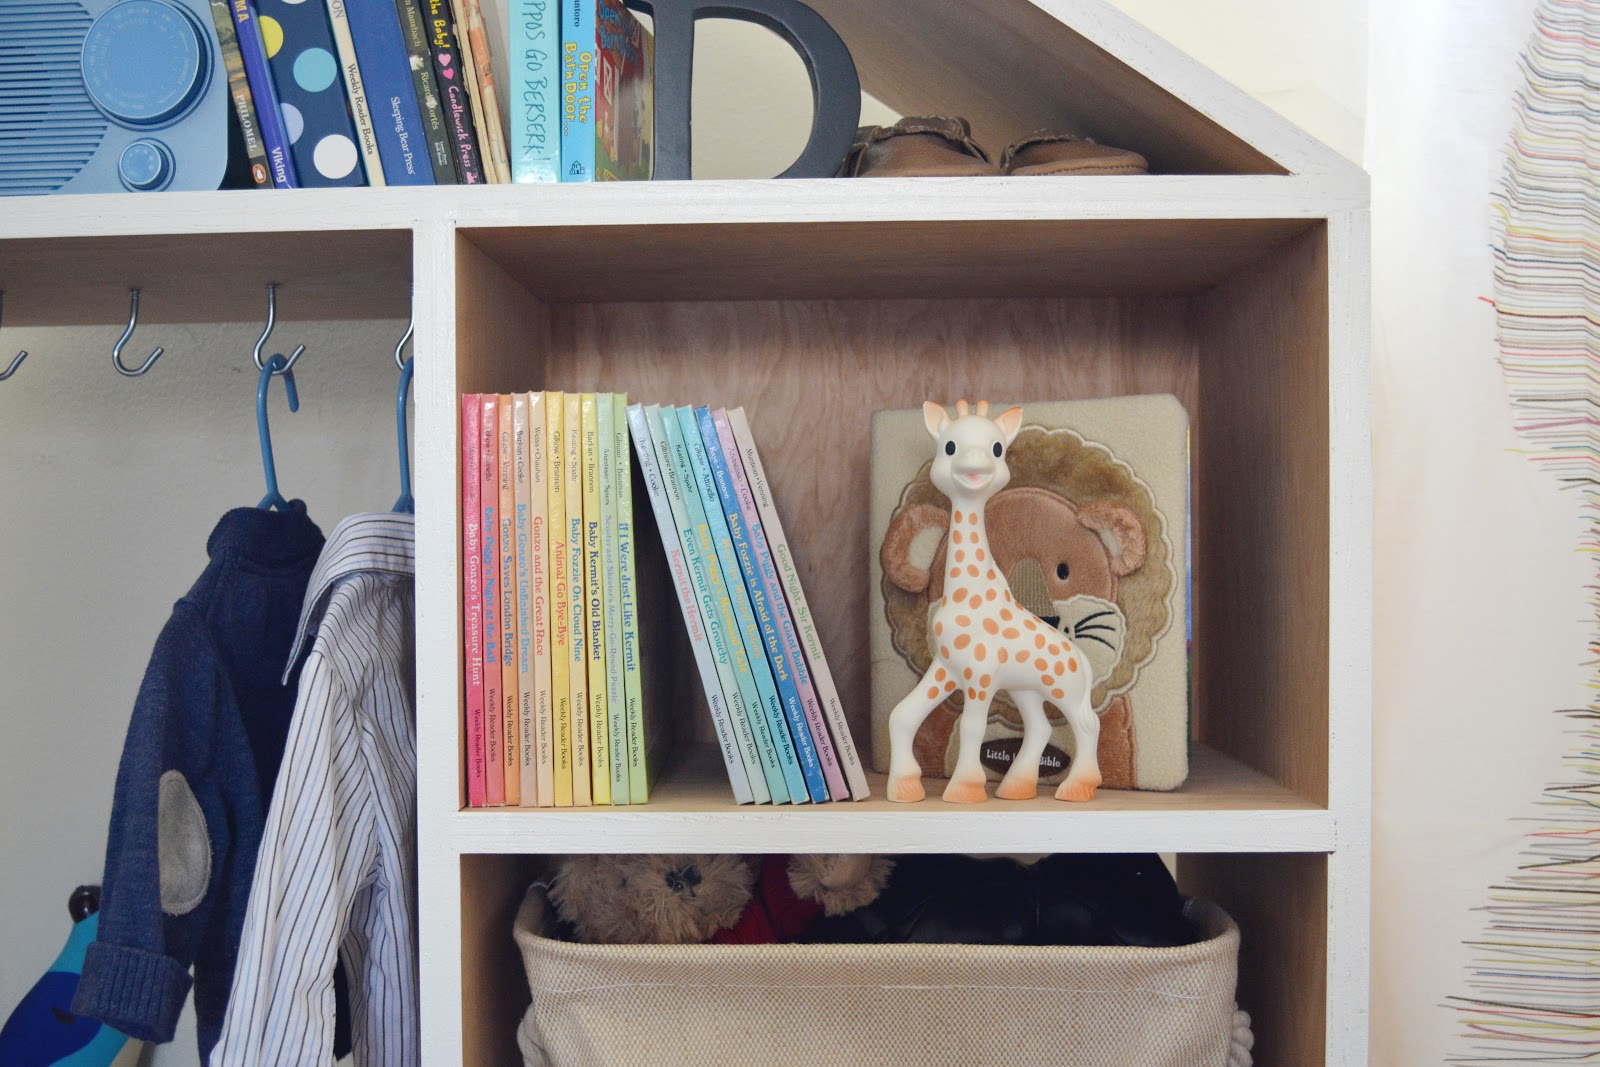 Ford's Baby Boy Nursery Bookshelf Detail - Interior Design by Lesley Myrick, Pasadena Interior Designer